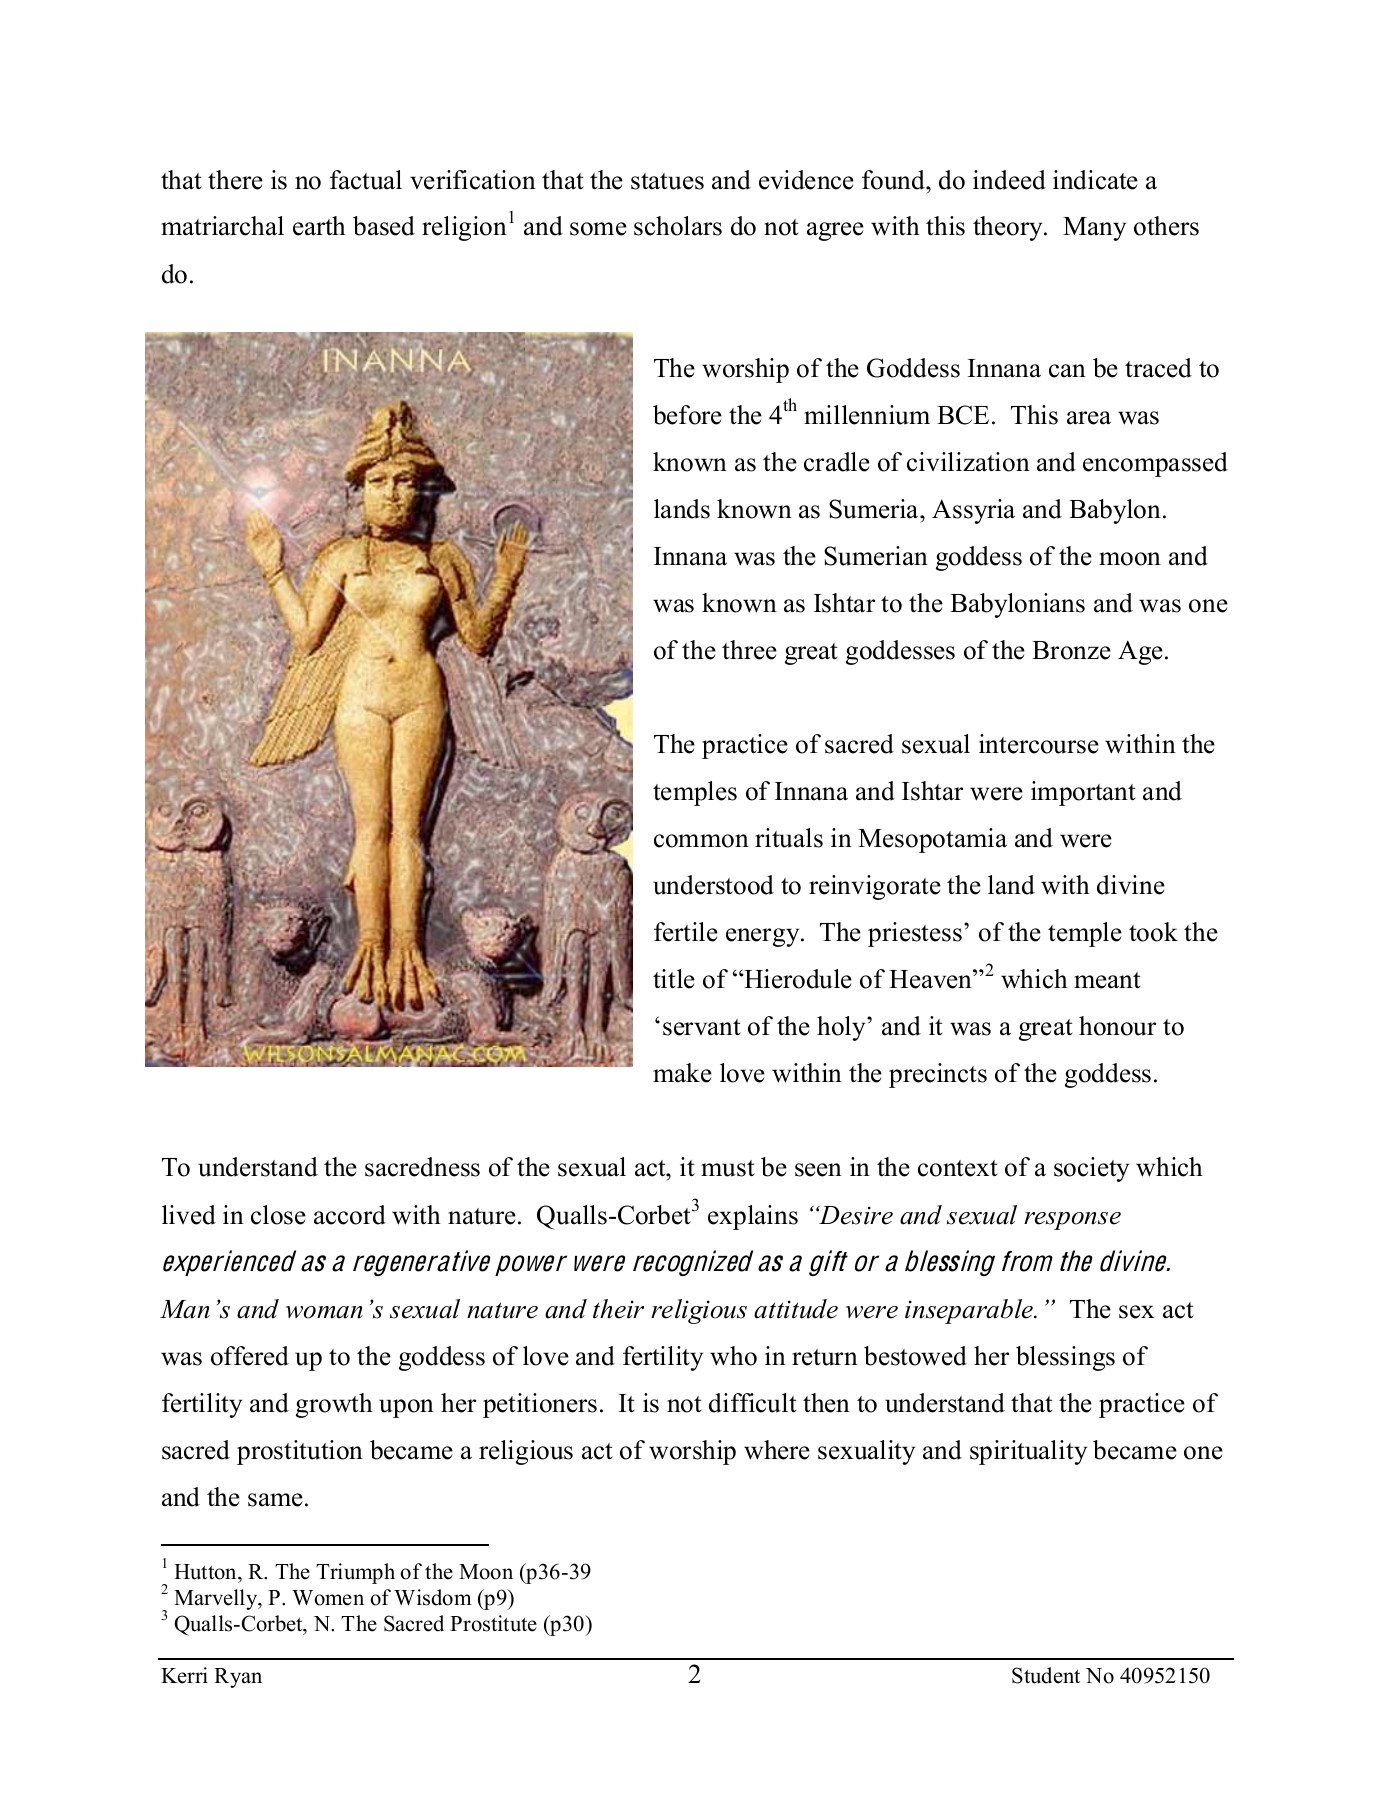 Tantric sex and sacred prostitutes